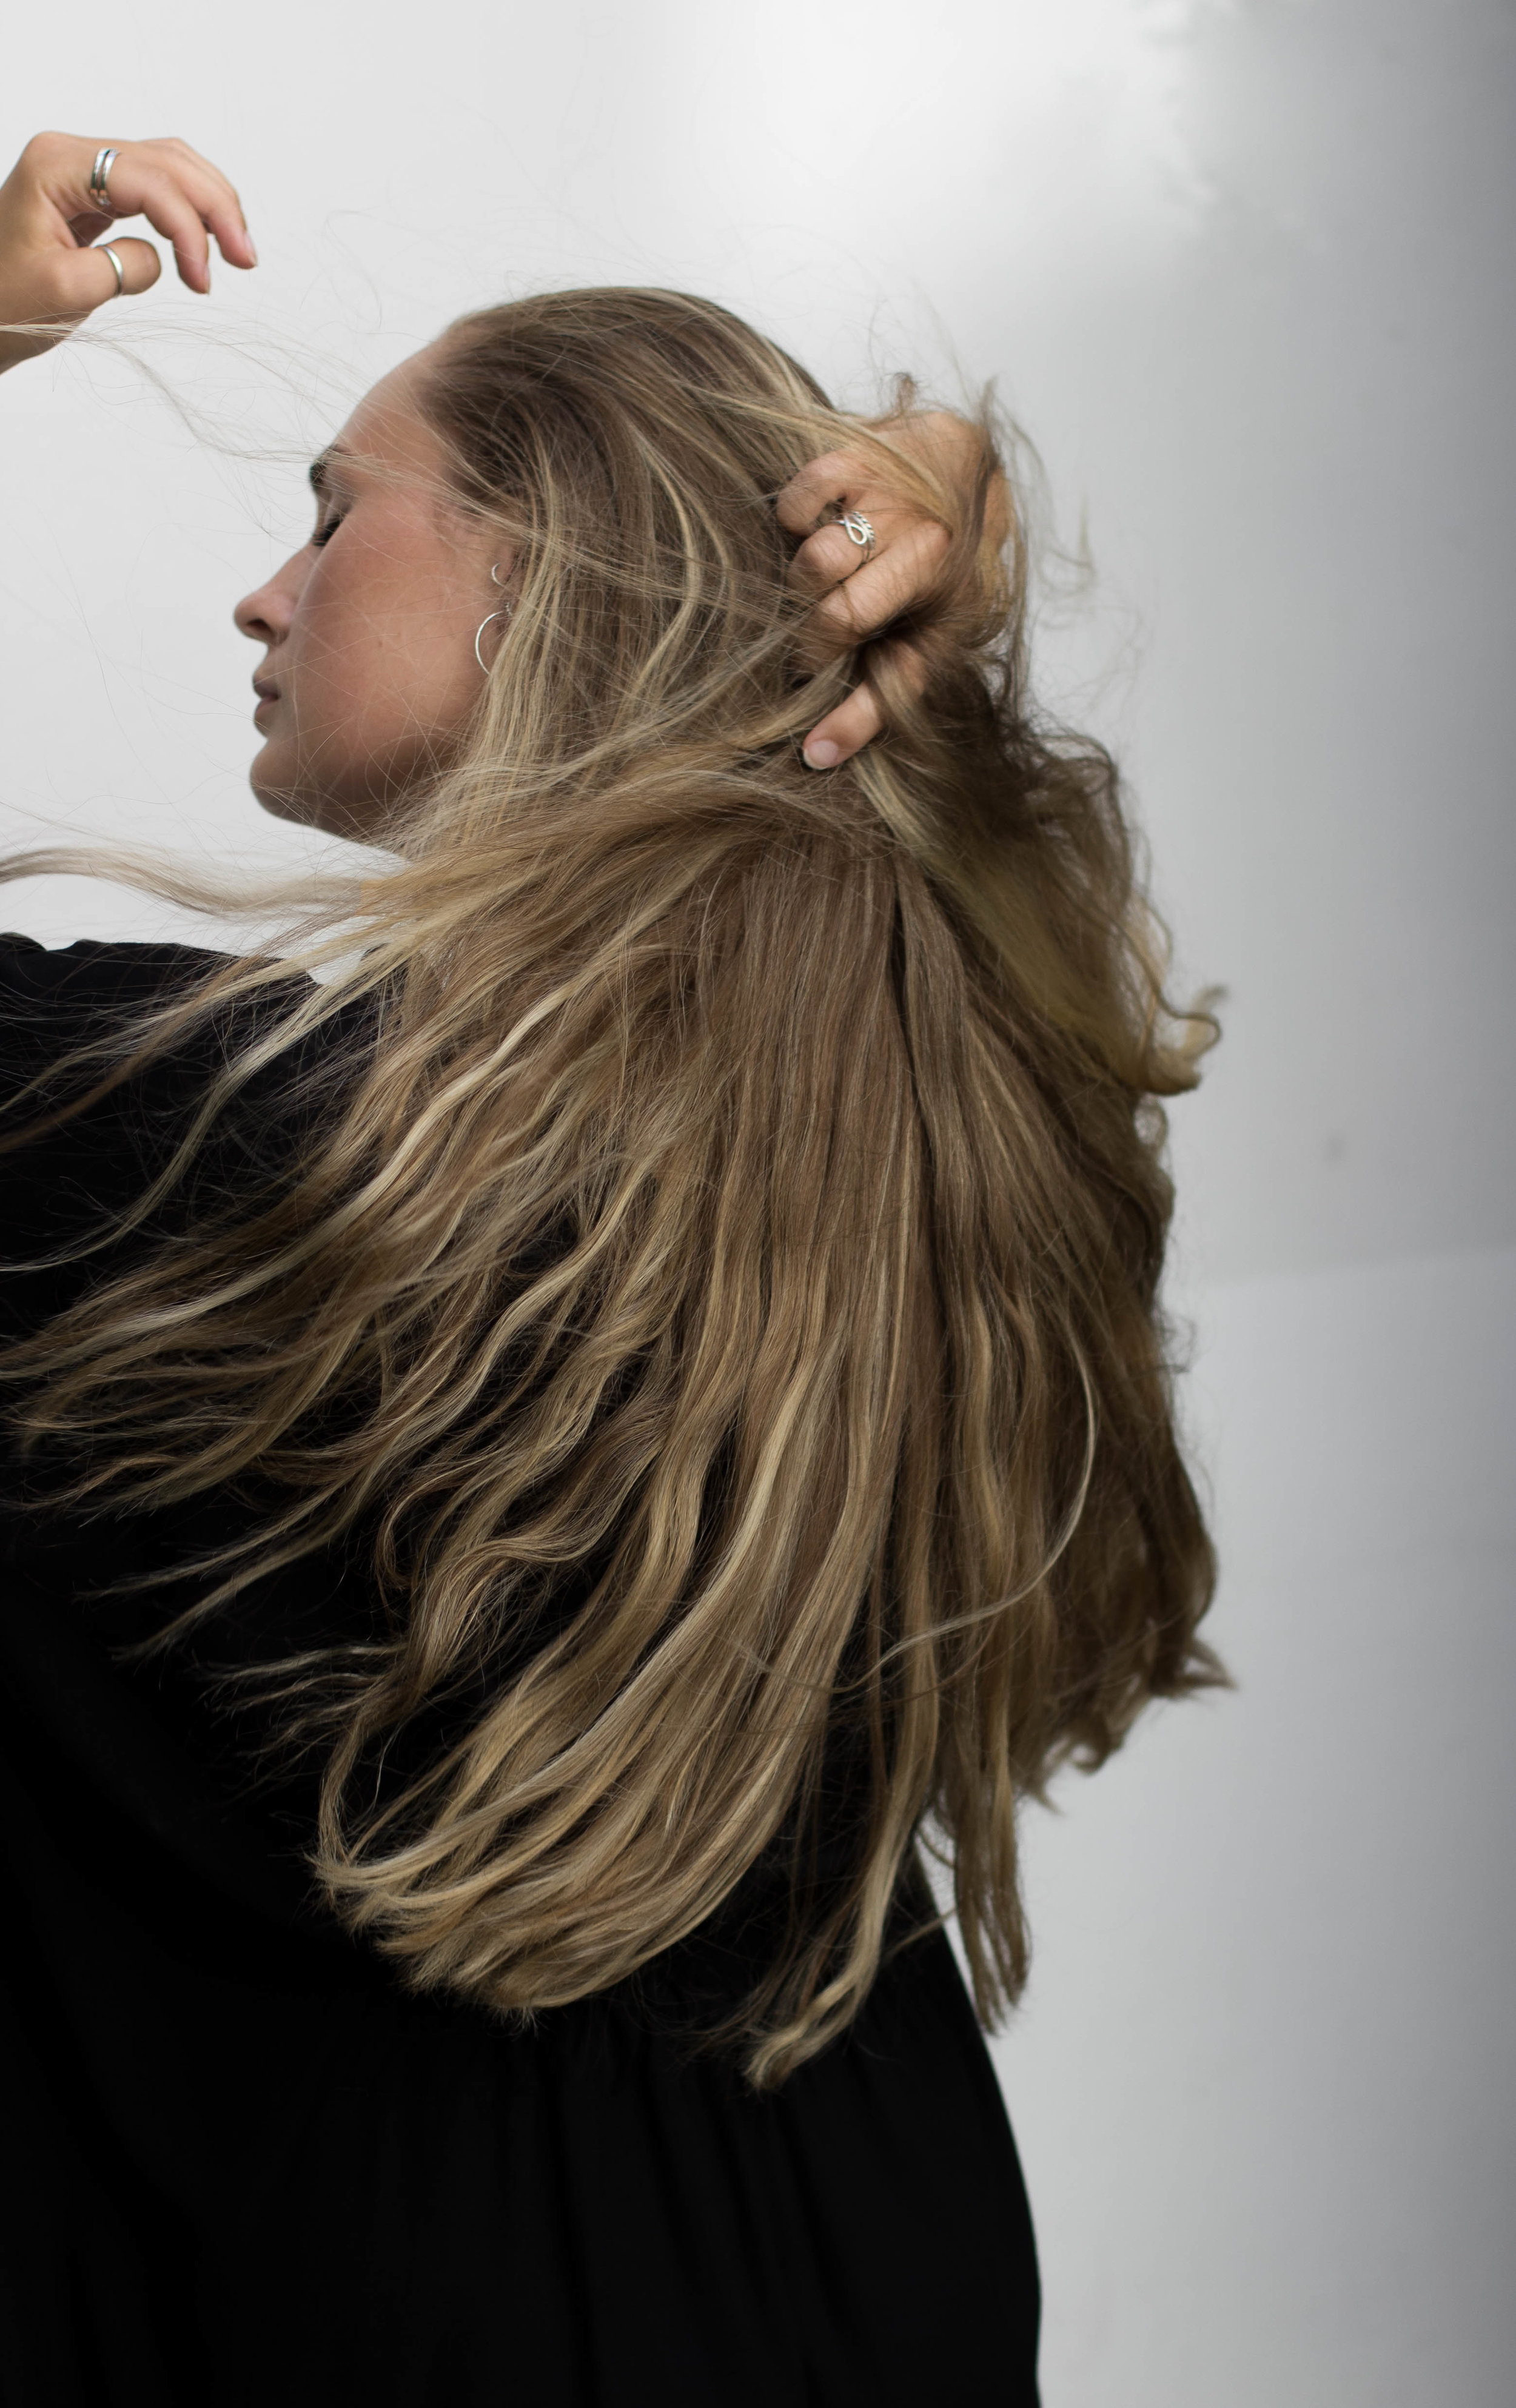 löwengrip, aboutthatlook, hair, beauty. haircare